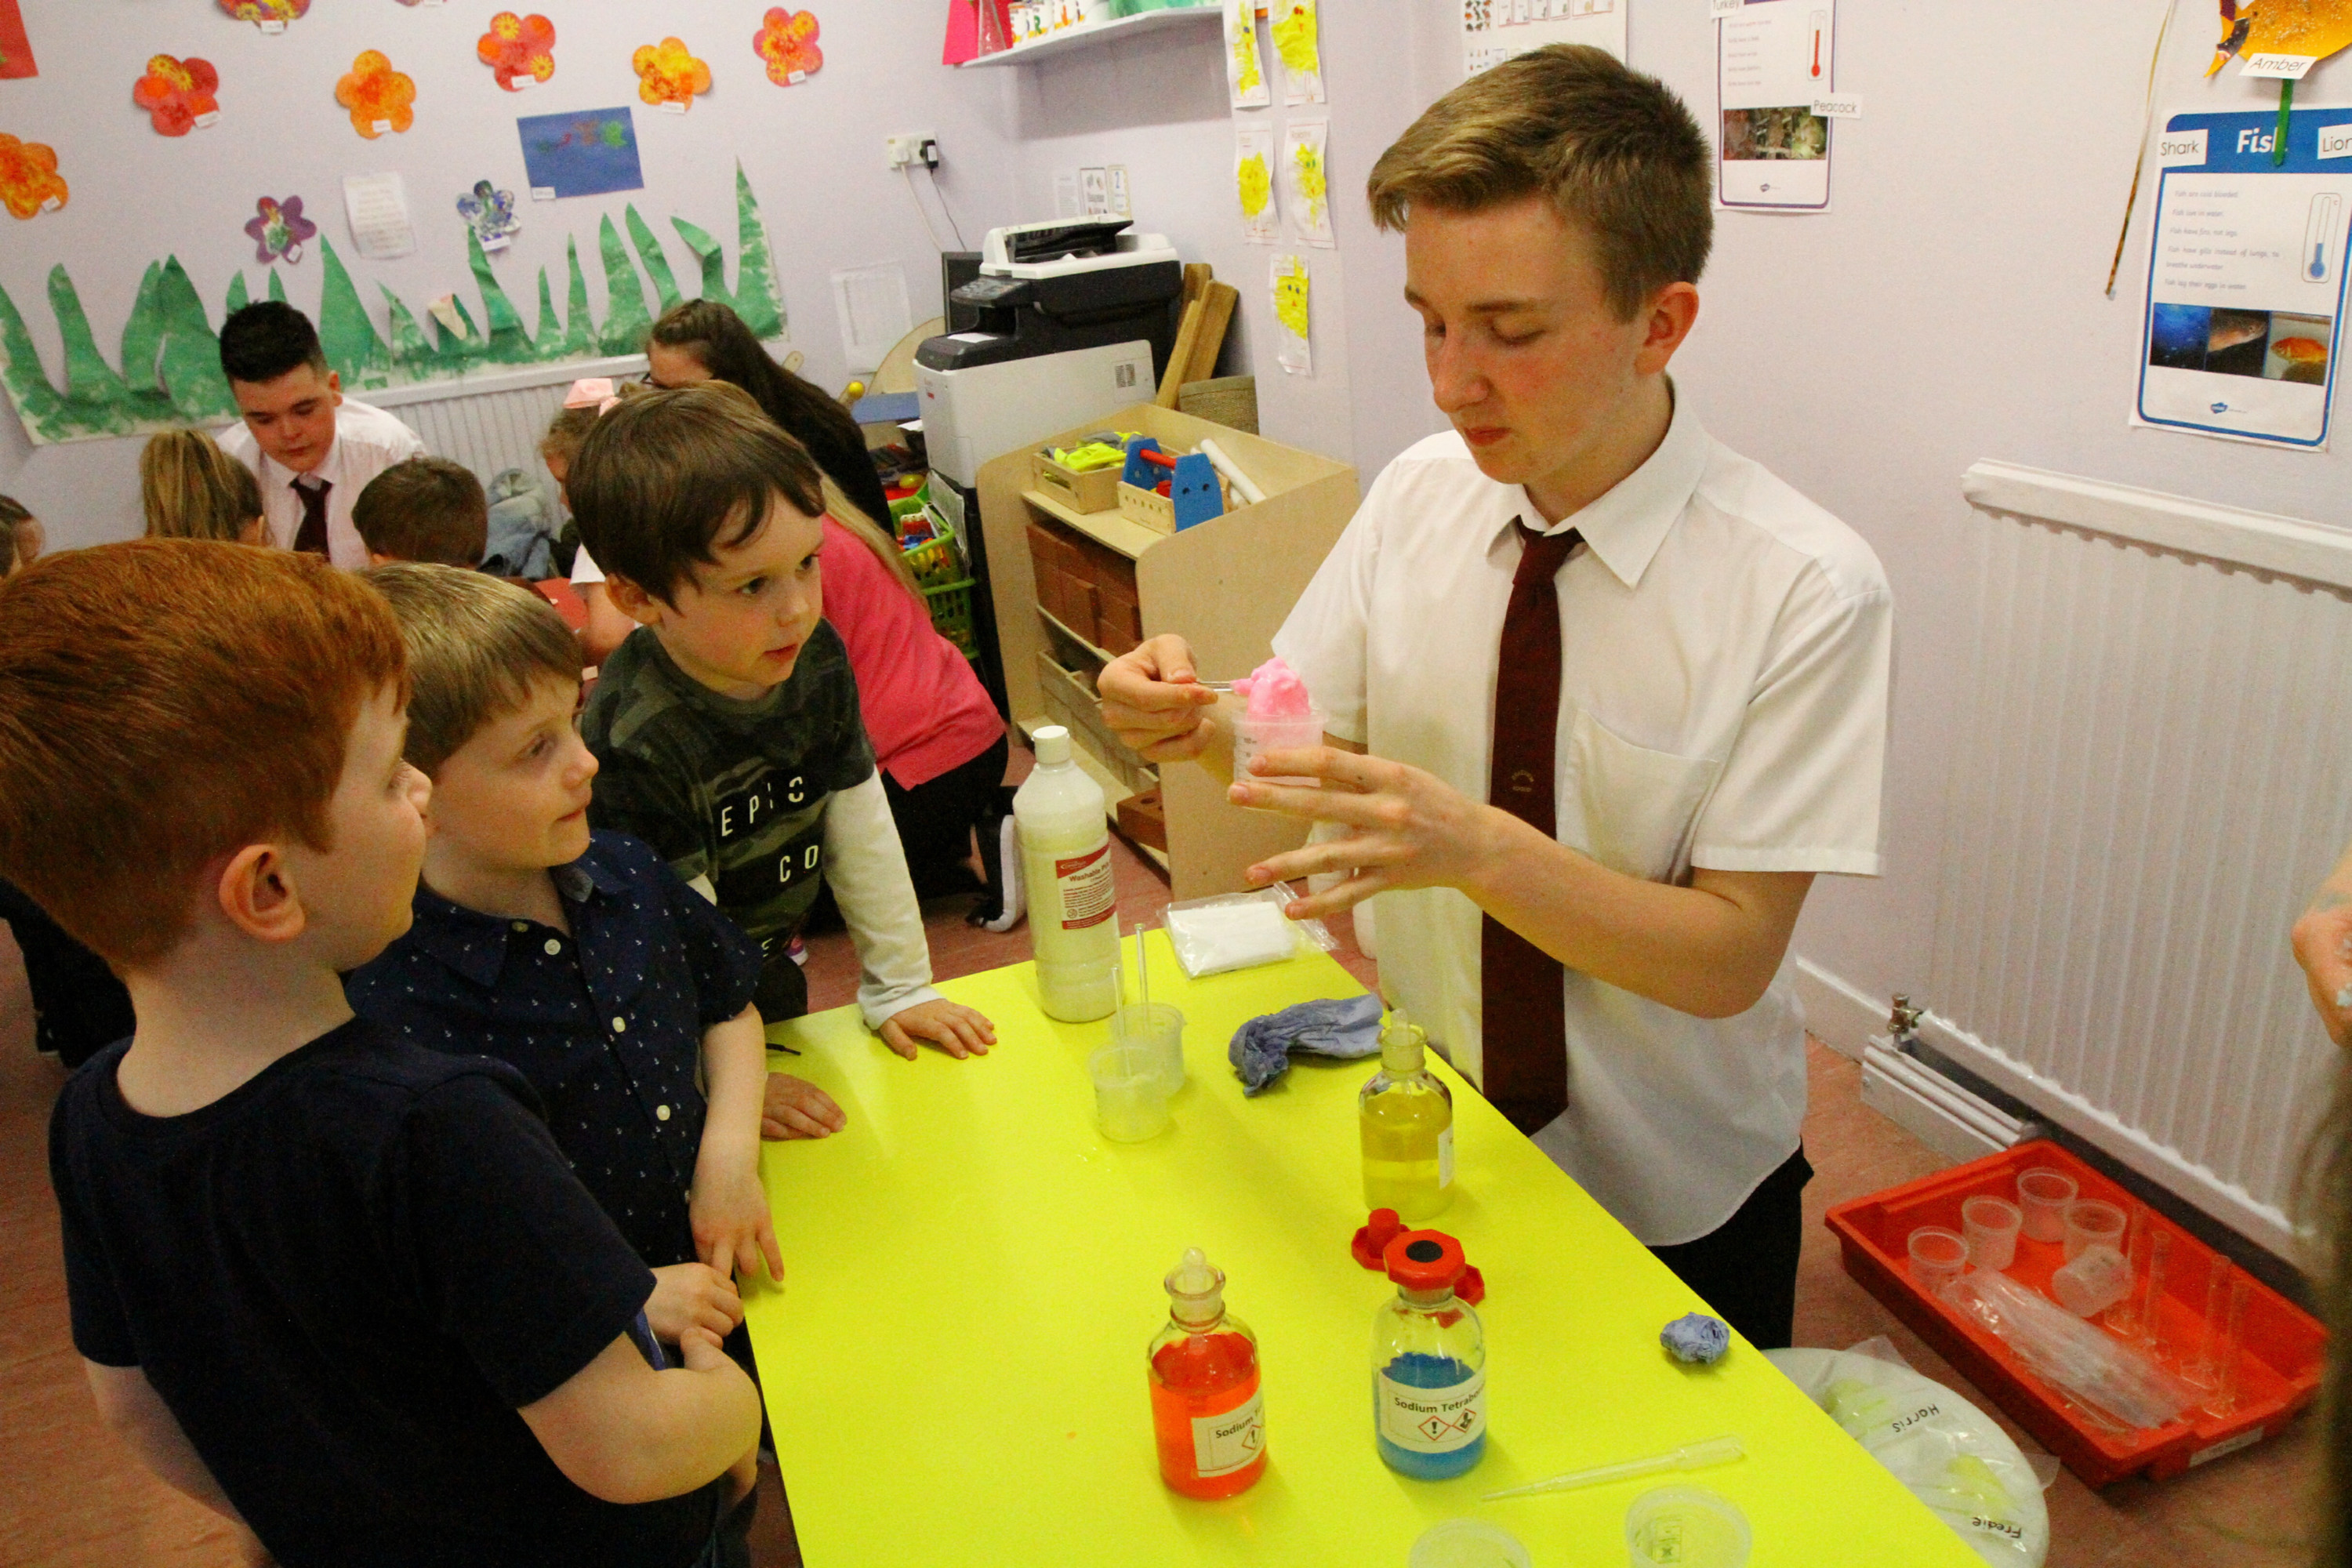 Tele Features - Sarah Williamson story - Nursery Rhymes Nursery. YOUNGSTARS. CR0000900 Picture shows; Braeview Academy S3 pupil Aiden Dalton with some of the kids doing experiments, at the Nursery Rhymes nursery in Broughty Ferry today. Wednesday 2nd May 2018.